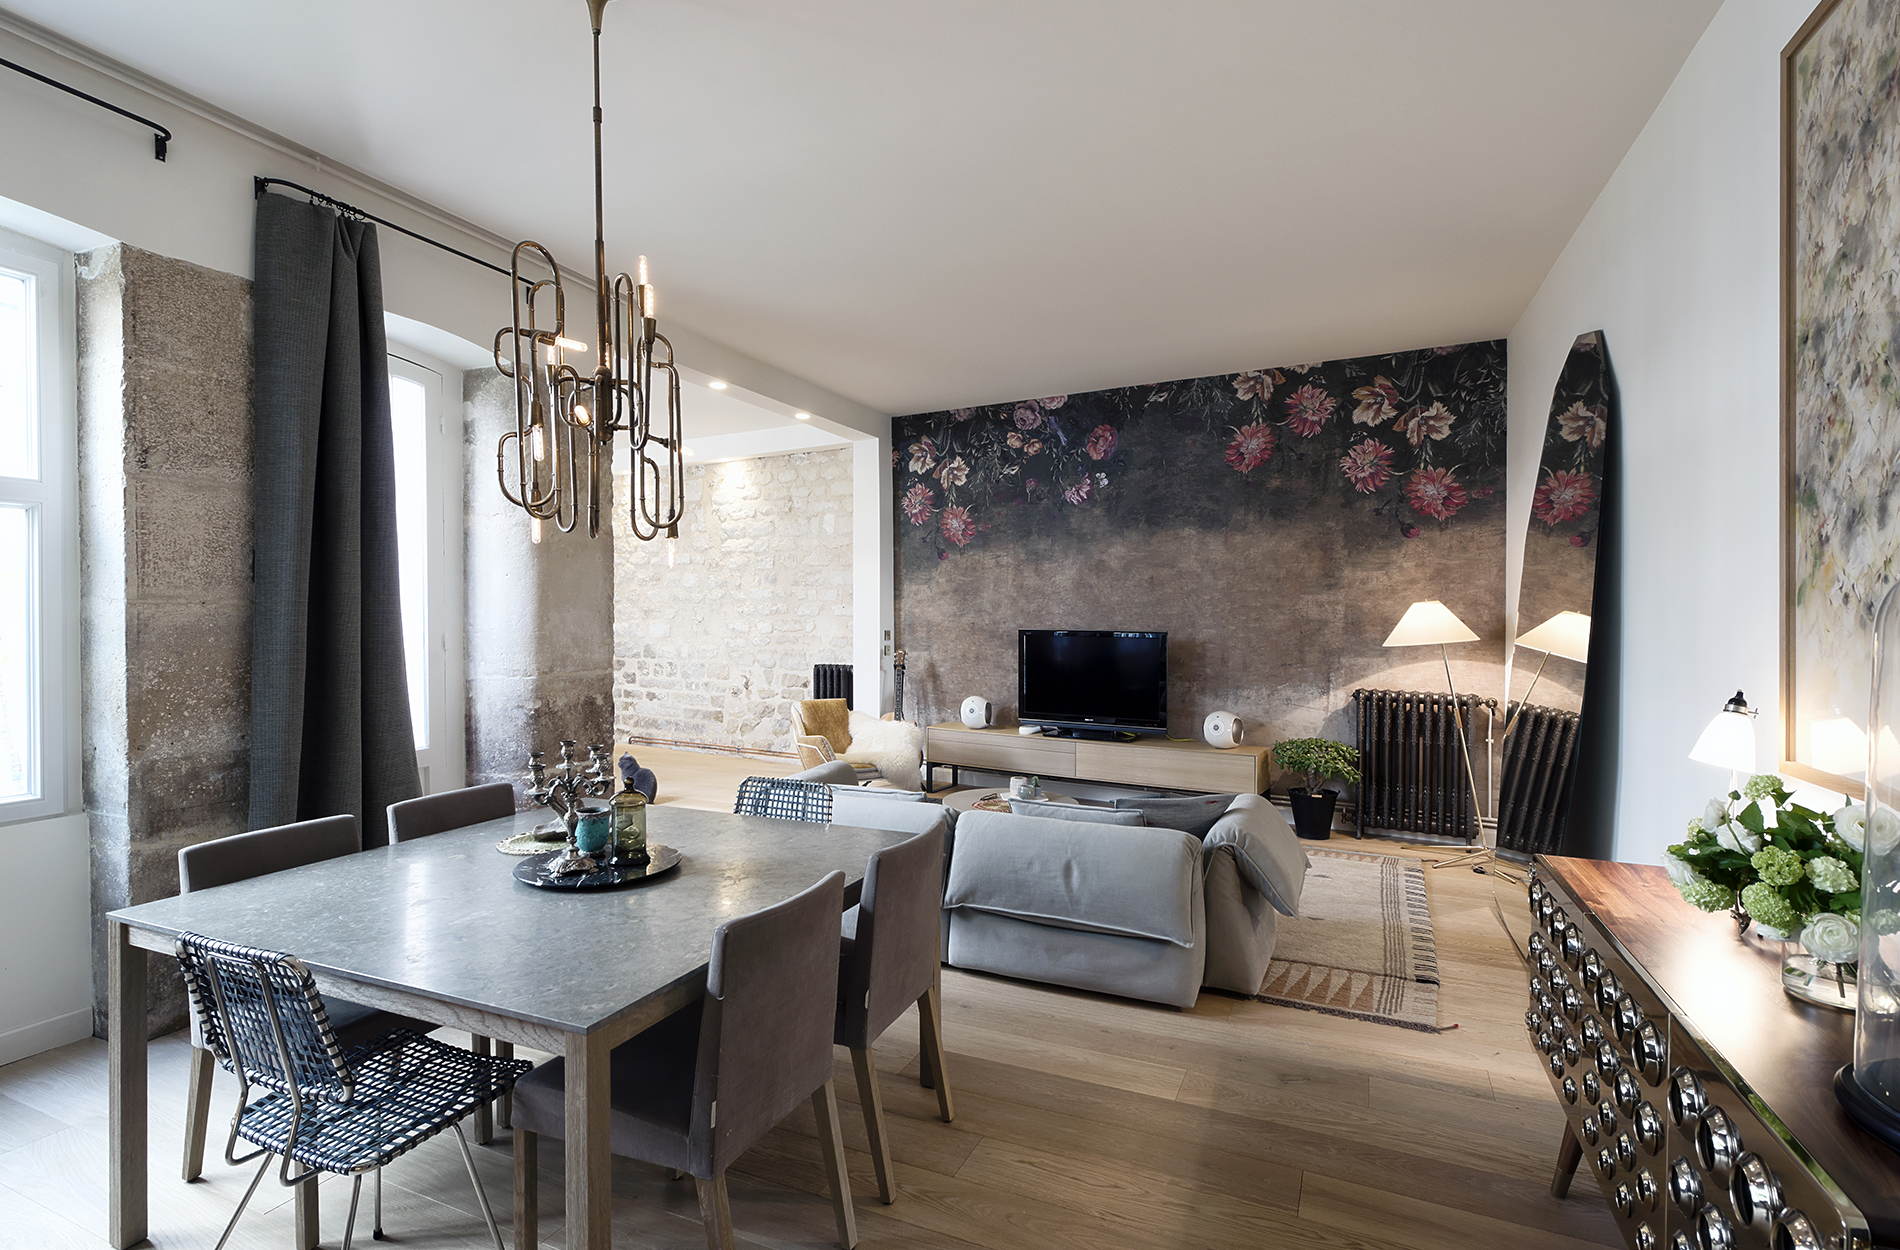 Mid-Century Lighting Brings Life to Apartment in Romantic Paris mid-century lighting Mid-Century Lighting Brings Life to Apartment in Romantic Paris Mid Century Lighting Brings Life to Apartment in Romantic Paris 3